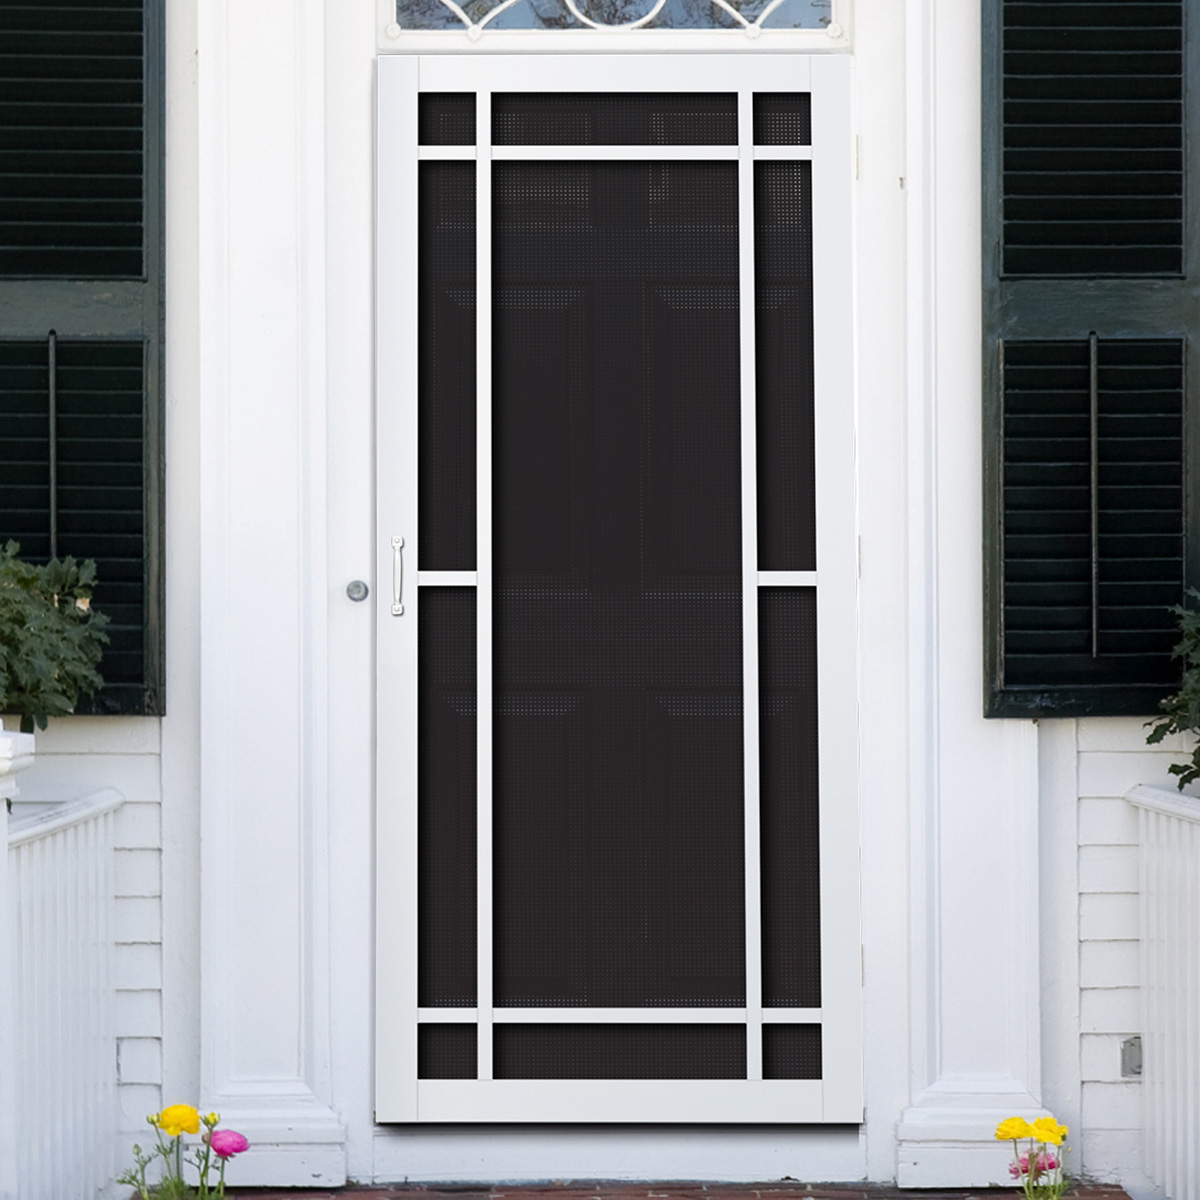 Screen Doors & Titan Security - Security Screen Door Products | Security Doors ...